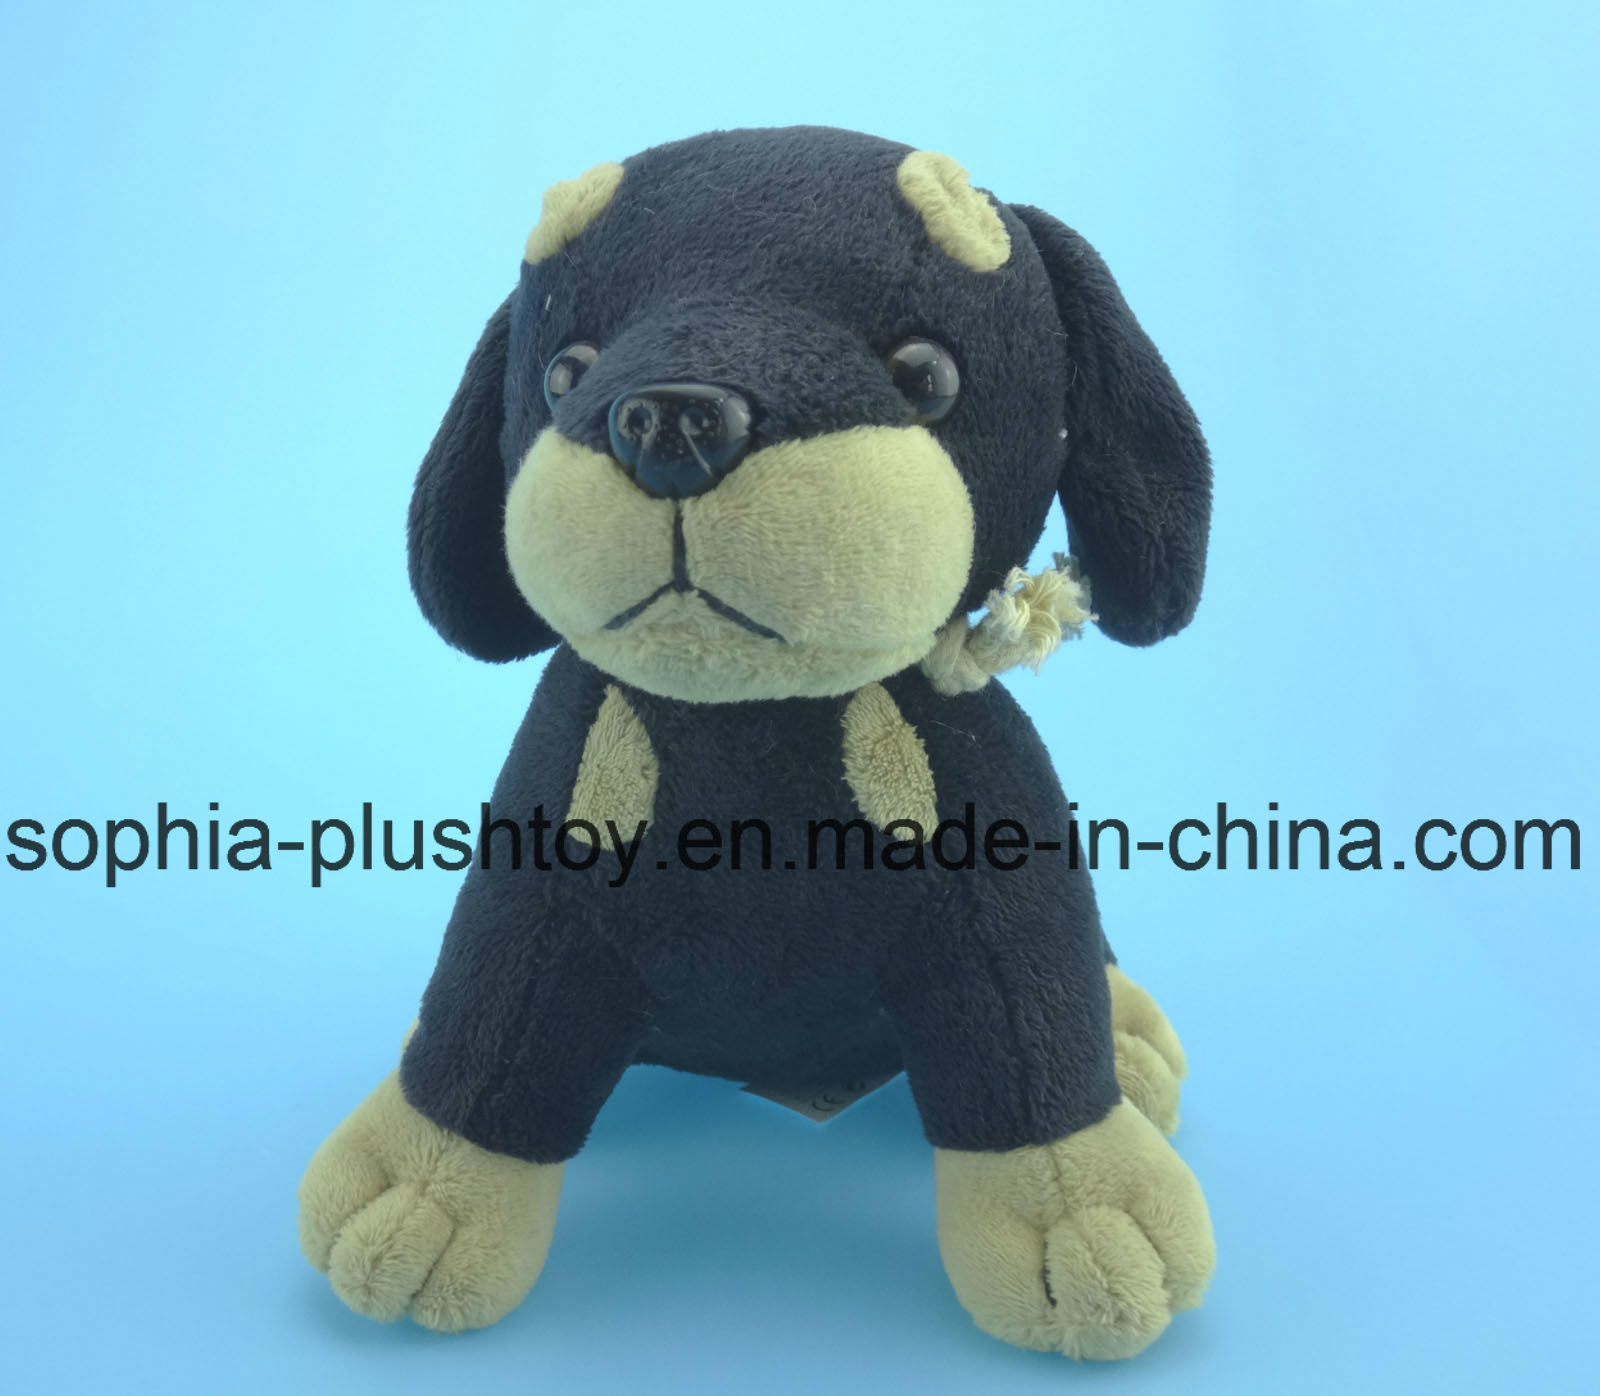 Soft Stuffed Plush Dog Toy 4 Asst. pictures & photos